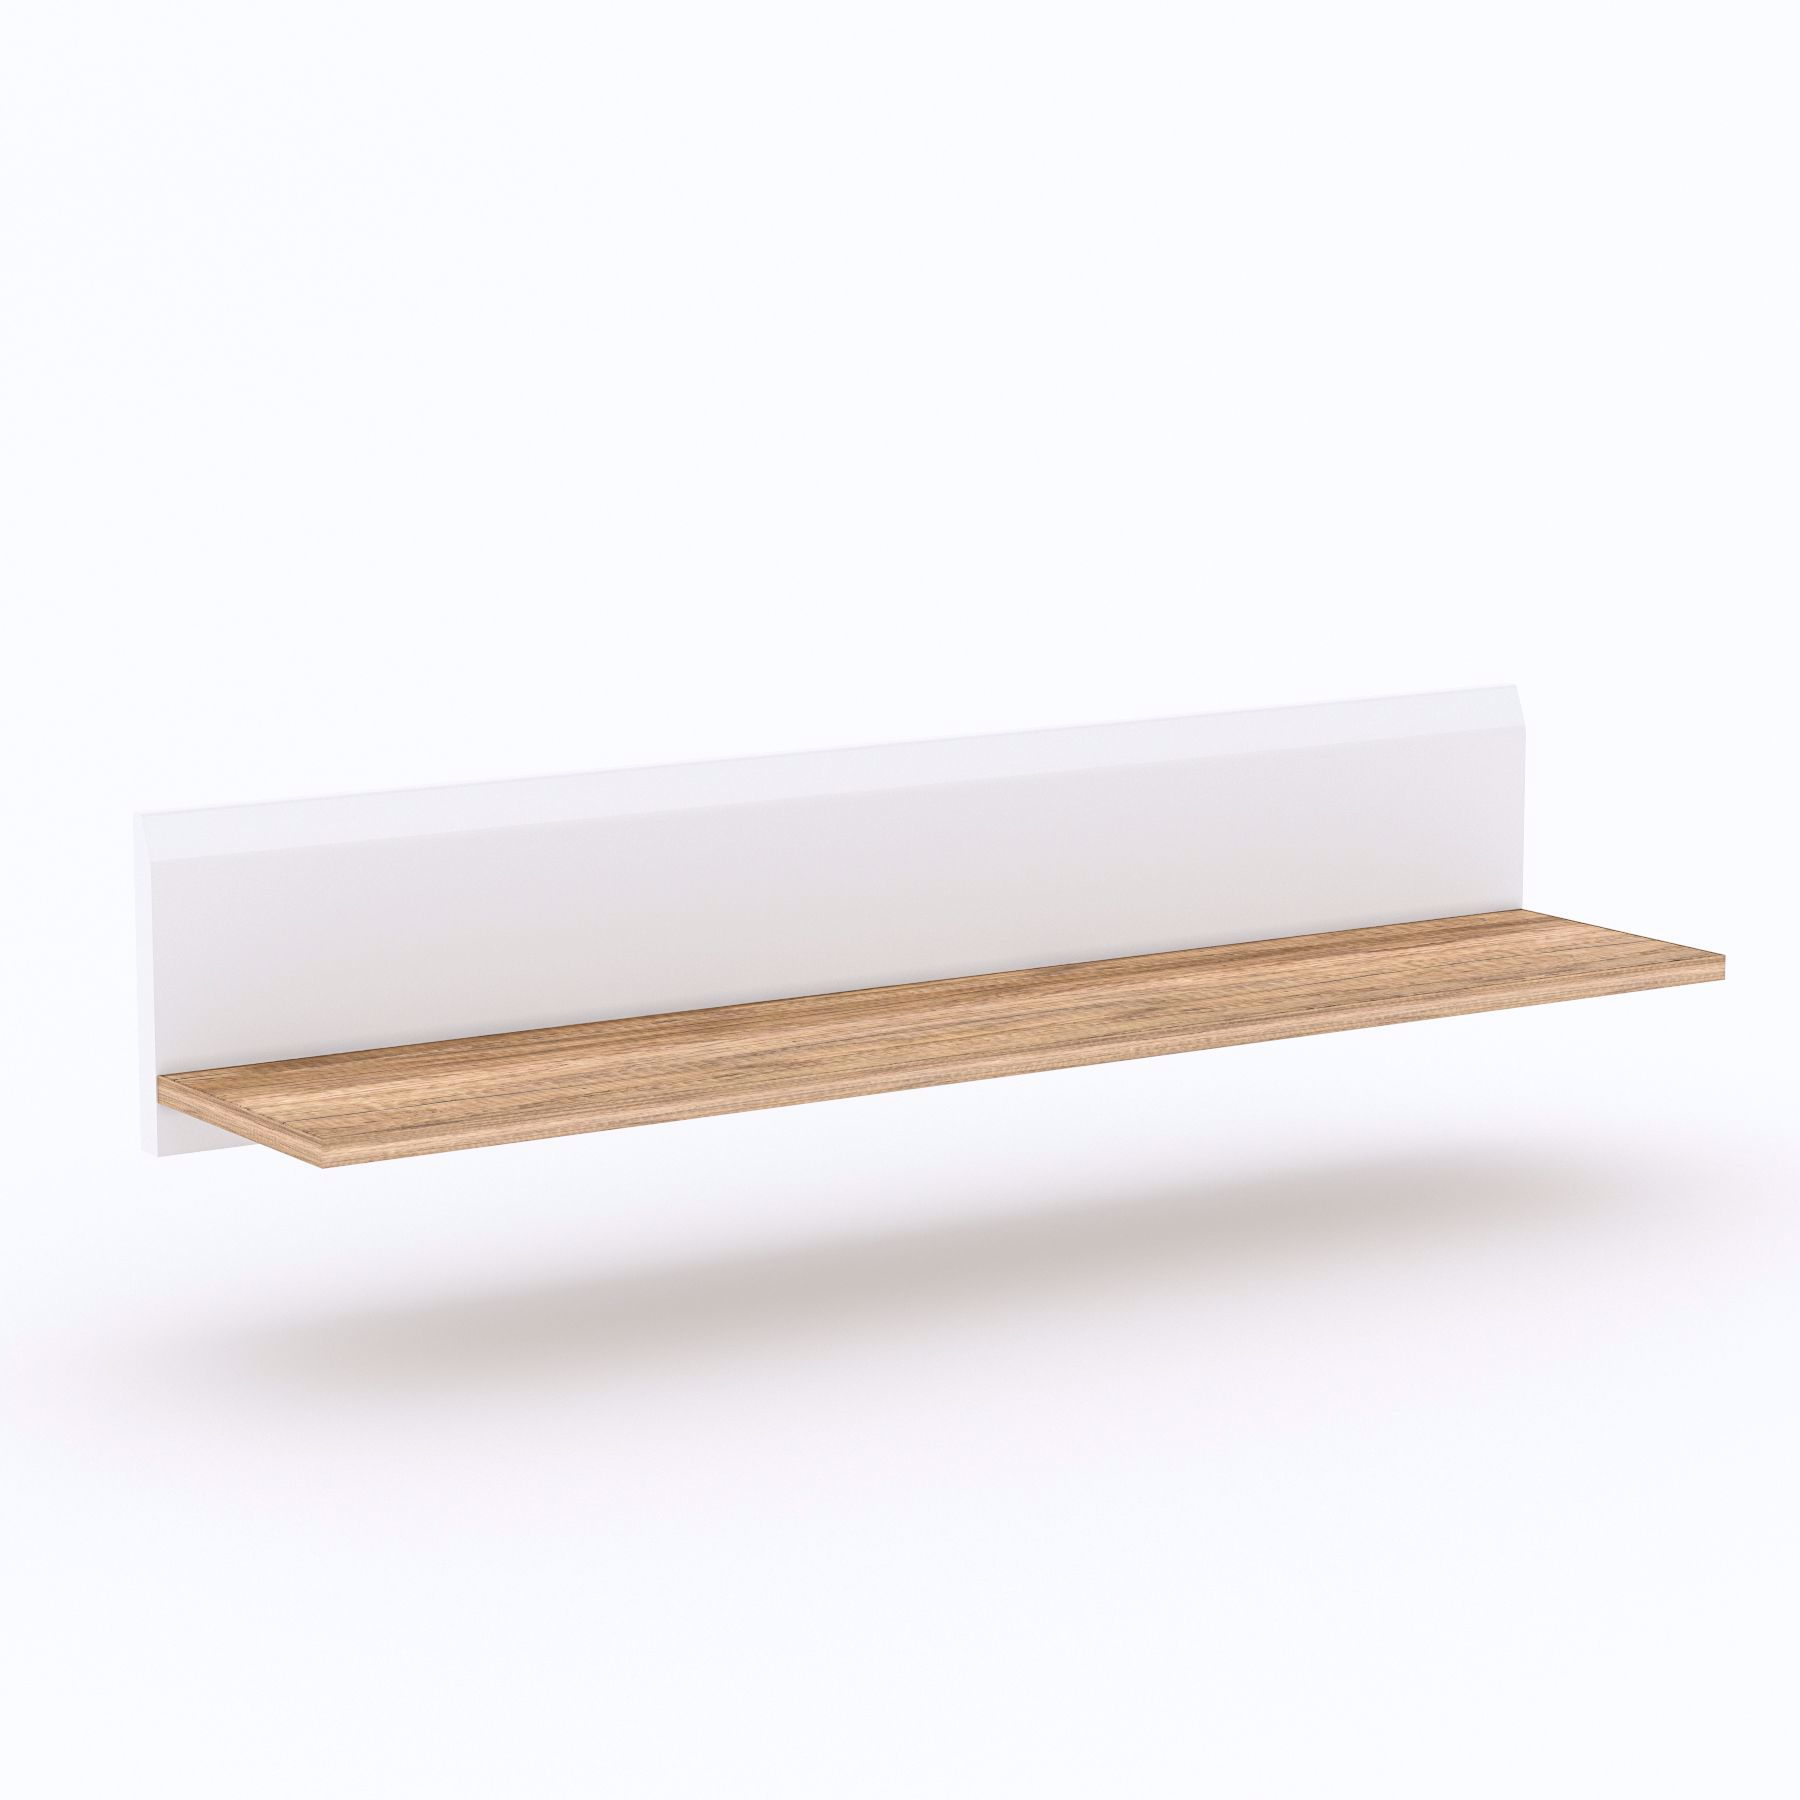 Picture of Letis PL2 Small Wall shelf